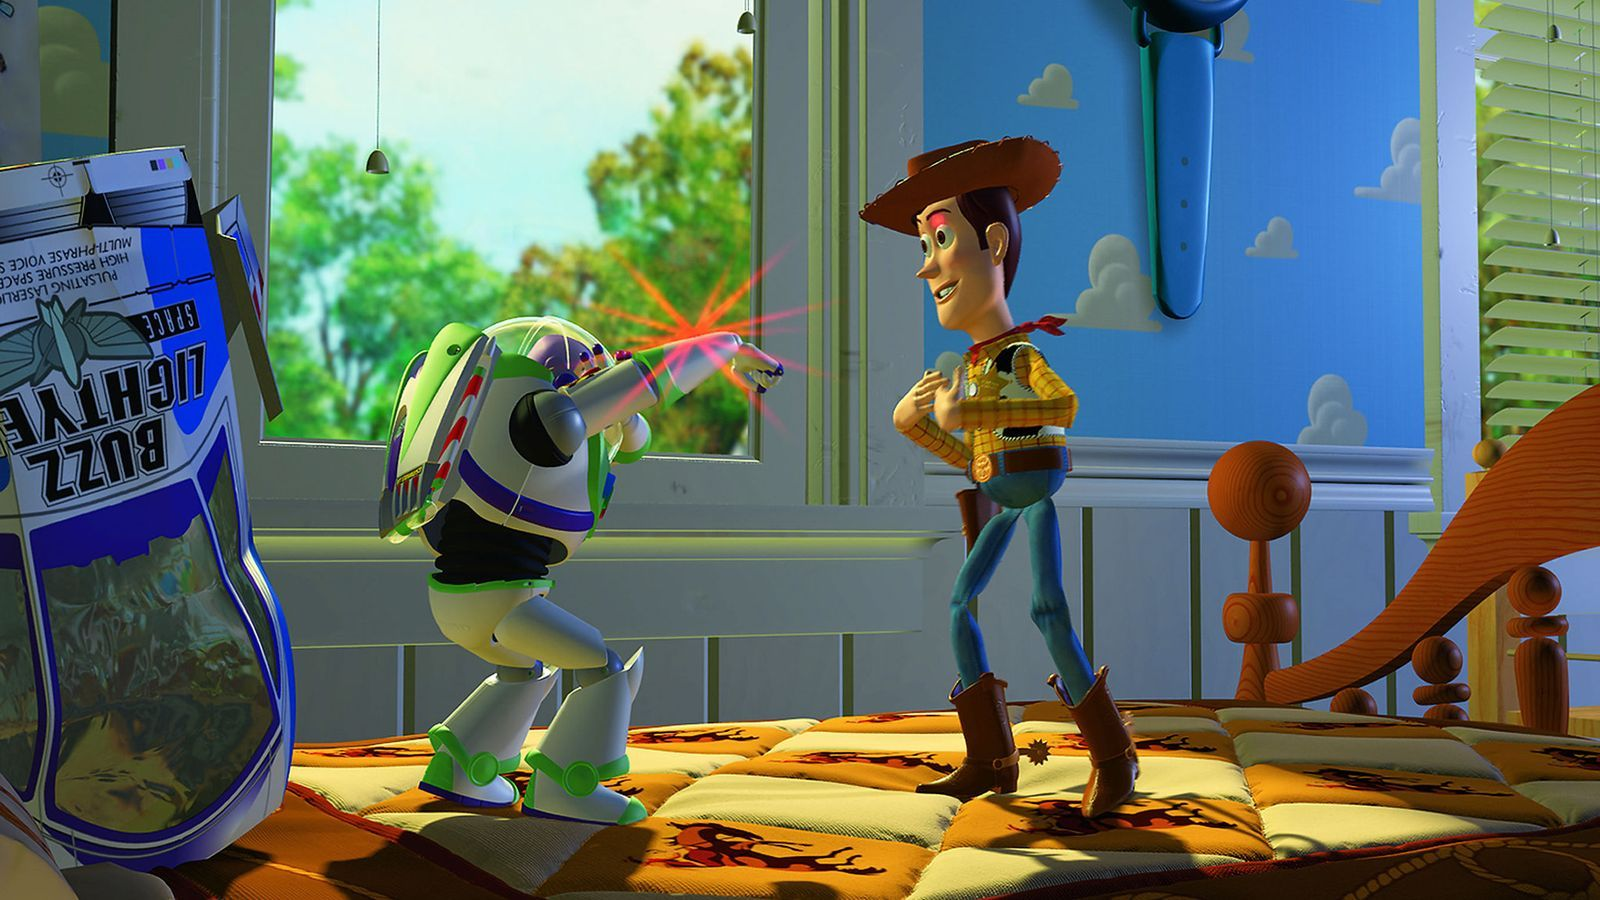 Pete Docter took the stage at Pixar's SXSW panel to rapturous applause, the kind of reception you'd expect for a movie star or rock god. But here at SXSW, where movies, technology, and music swirl...